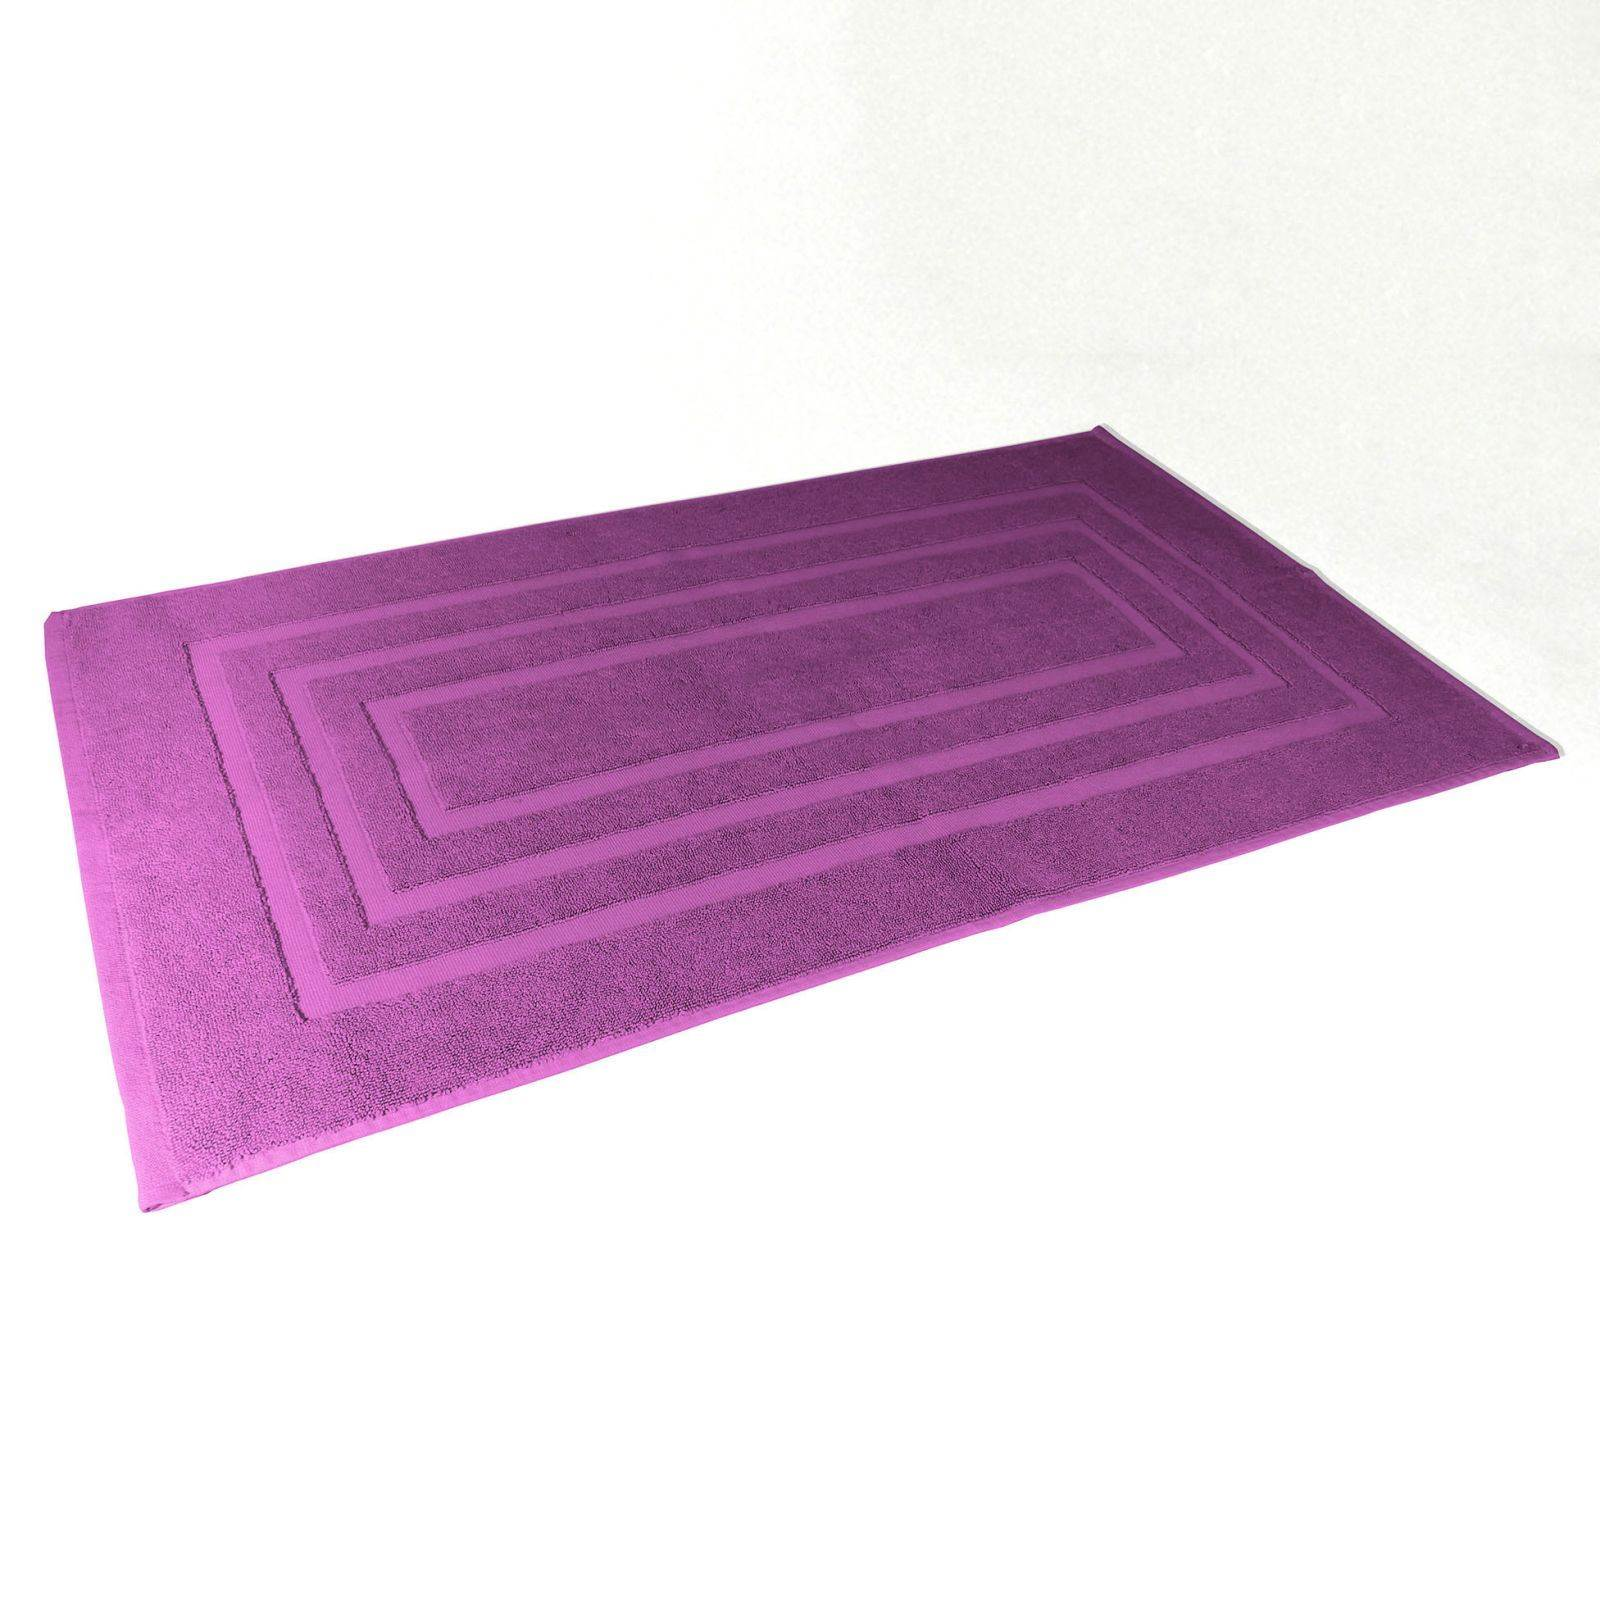 douceur d 39 int rieur tapis de salle de bain violet. Black Bedroom Furniture Sets. Home Design Ideas